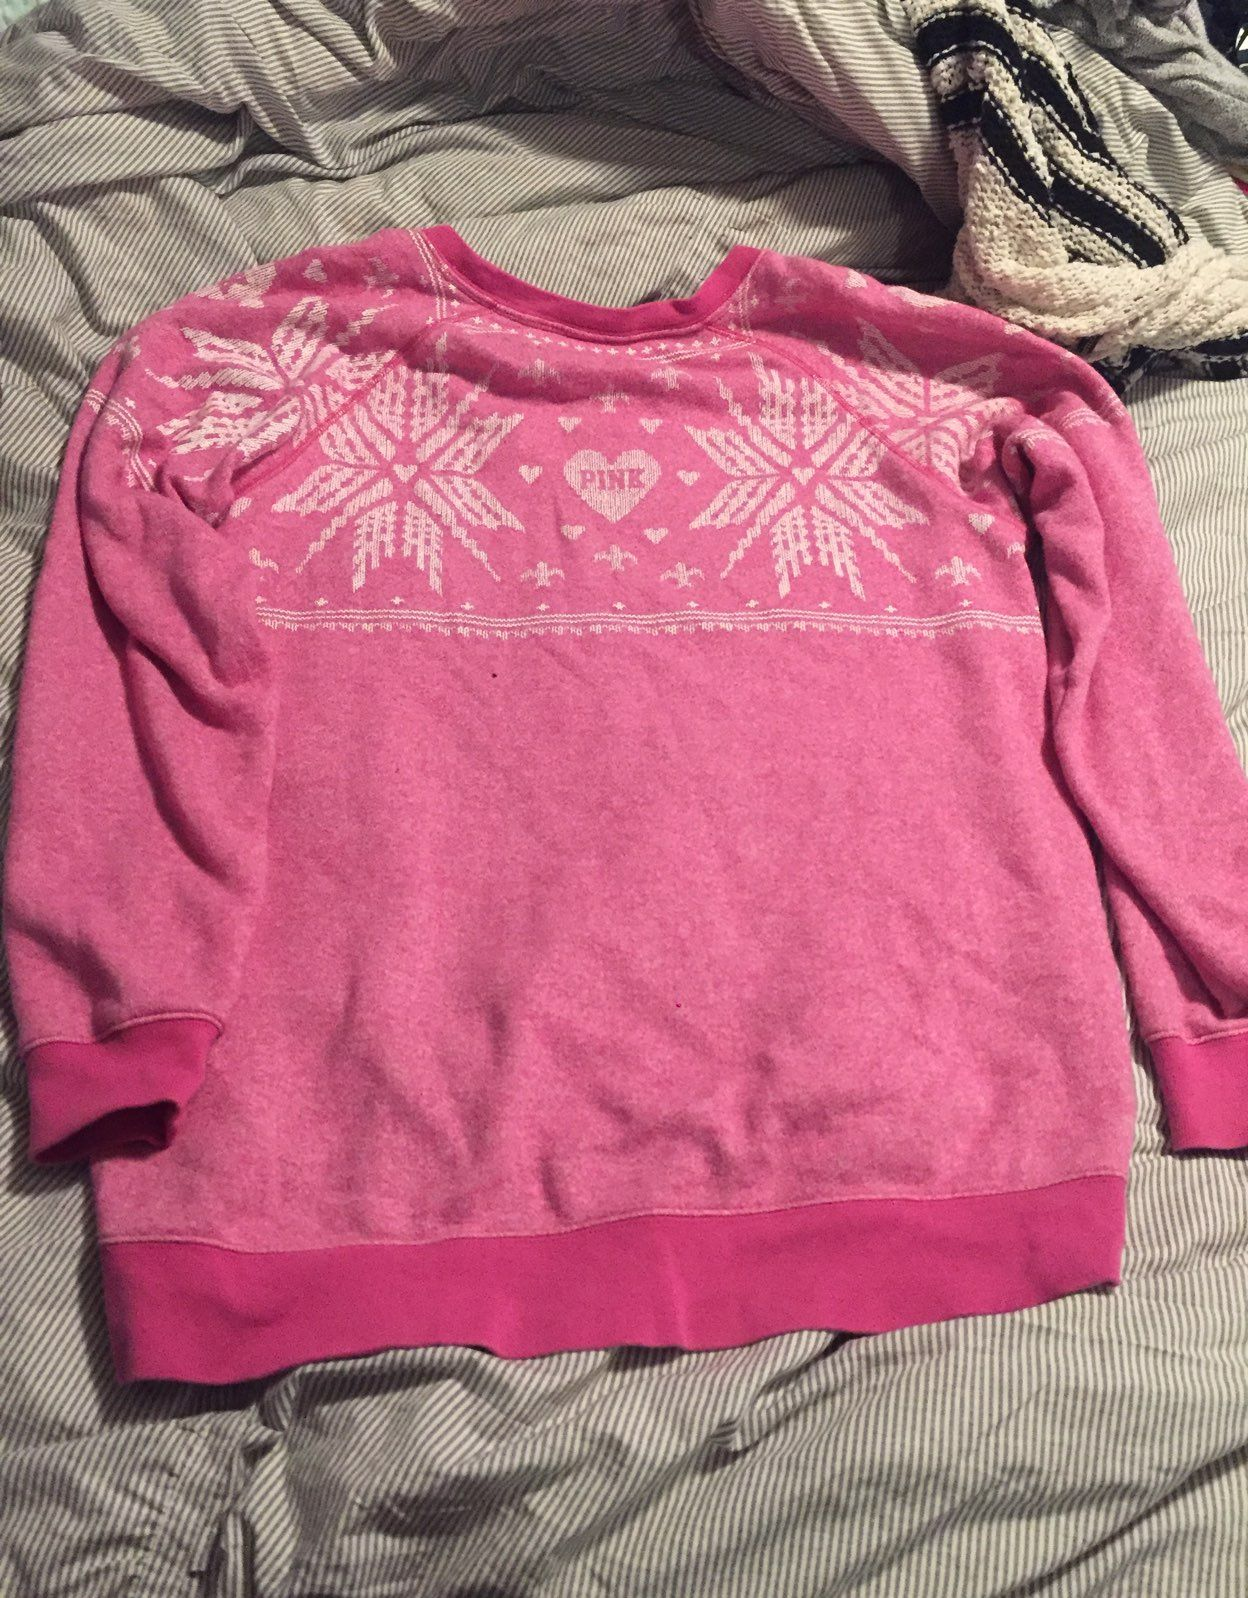 Victoria's Secret Pink Fair Isle Sweater - Mercari: BUY & SELL ...